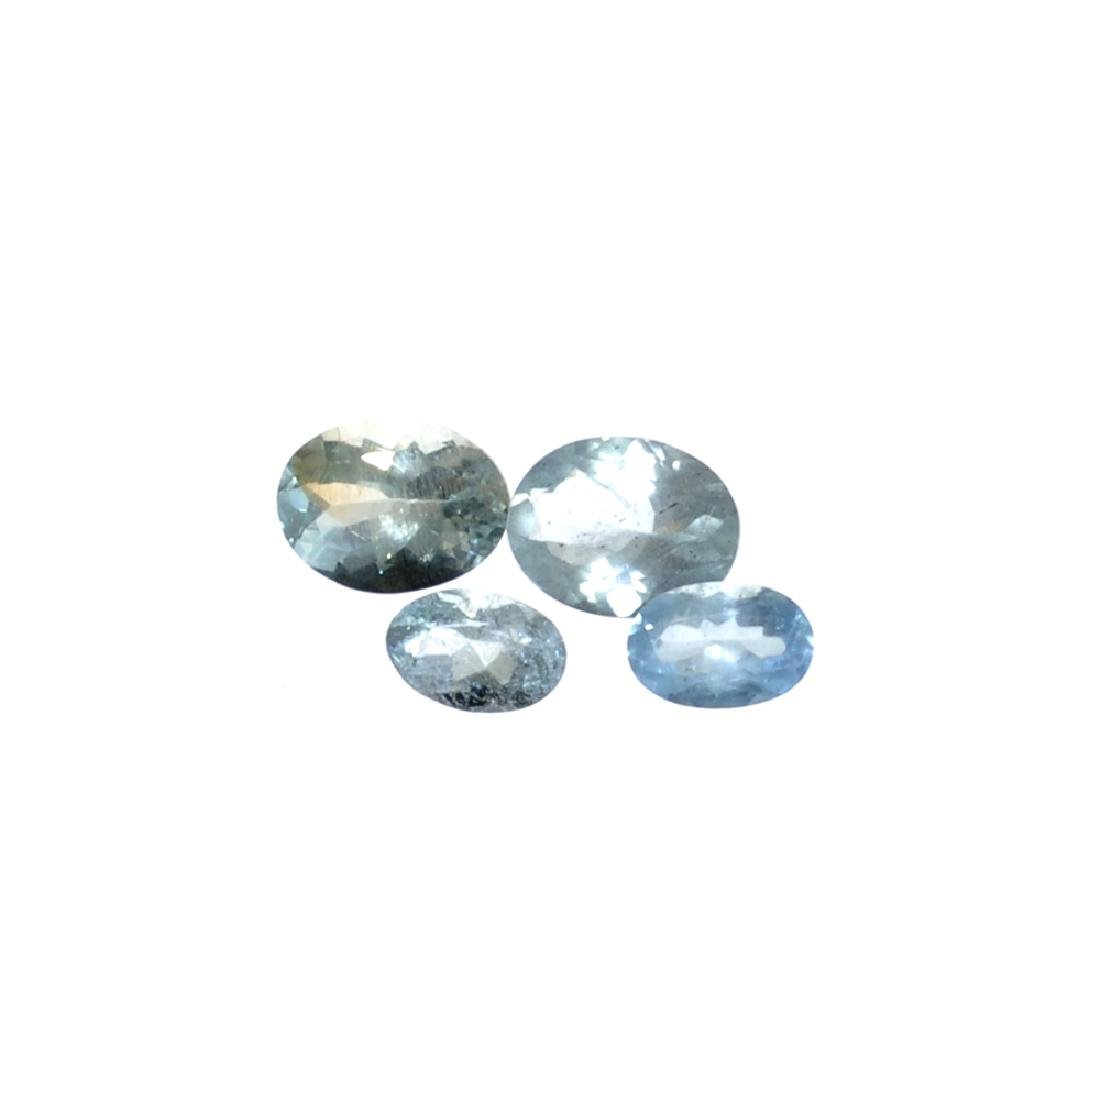 APP: 1.1k 3.56CT Oval Cut Aquamarine Parcel